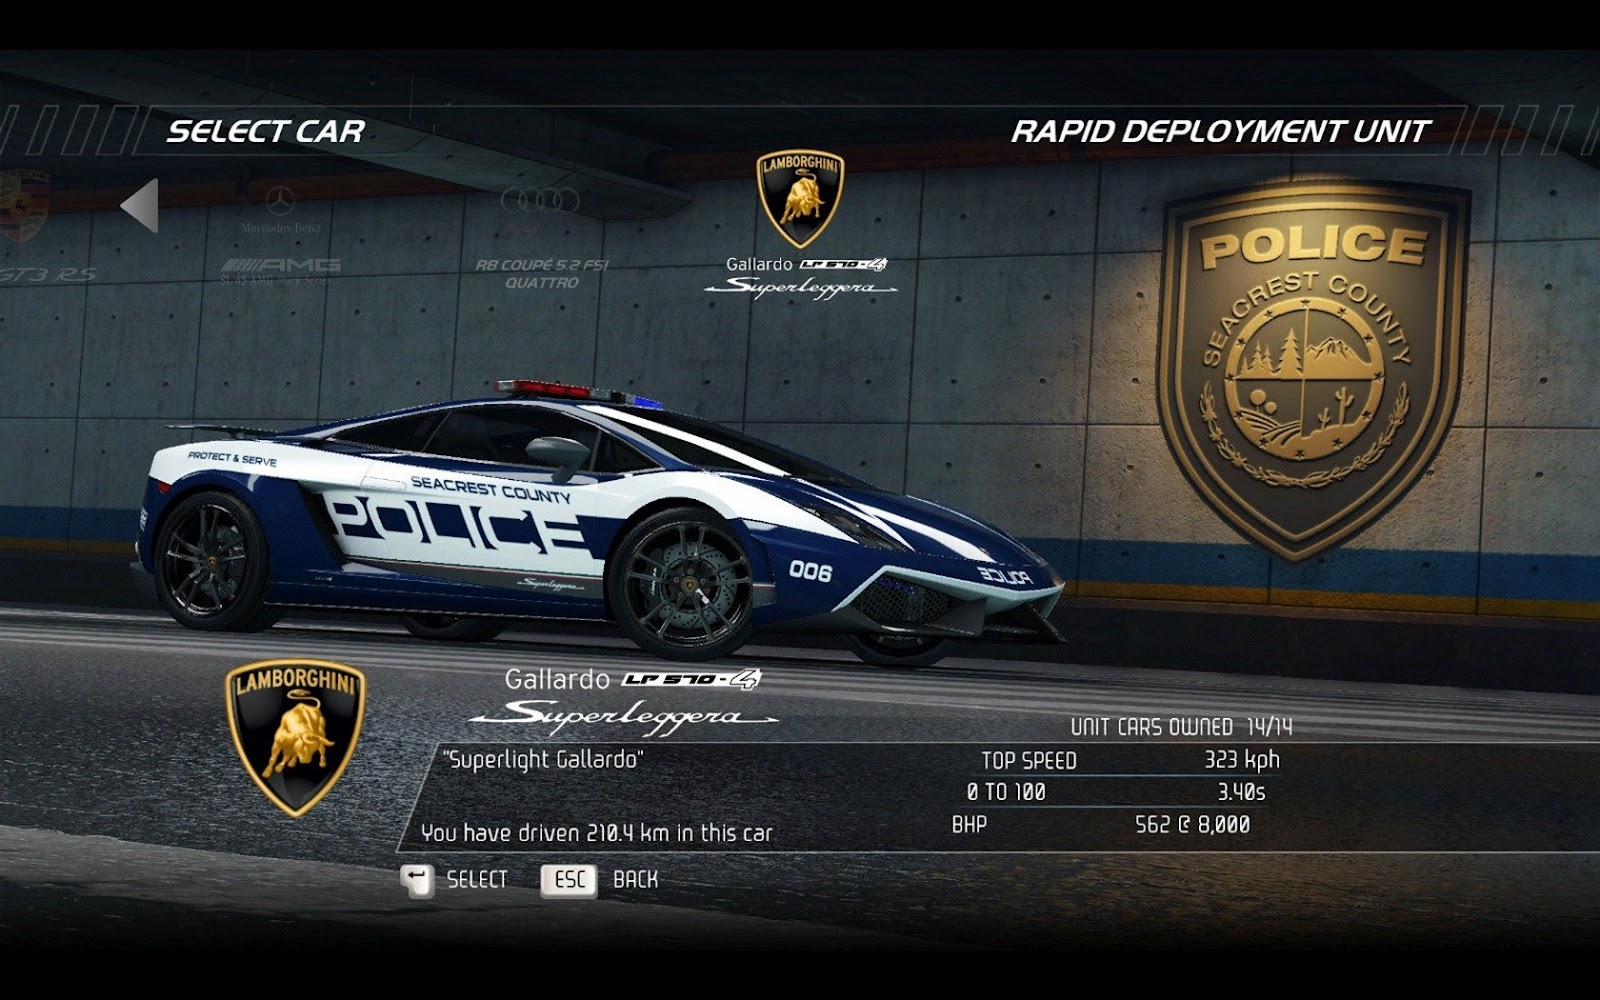 http://1.bp.blogspot.com/-un5FFQyec6M/T4WrXAL26dI/AAAAAAAABSQ/VqCCzYgosT0/s1600/Nfs_Hot_Pursuit_Lamborghini_Gallardo_Police_Car_HD_Game_Wallpaper-gWb.